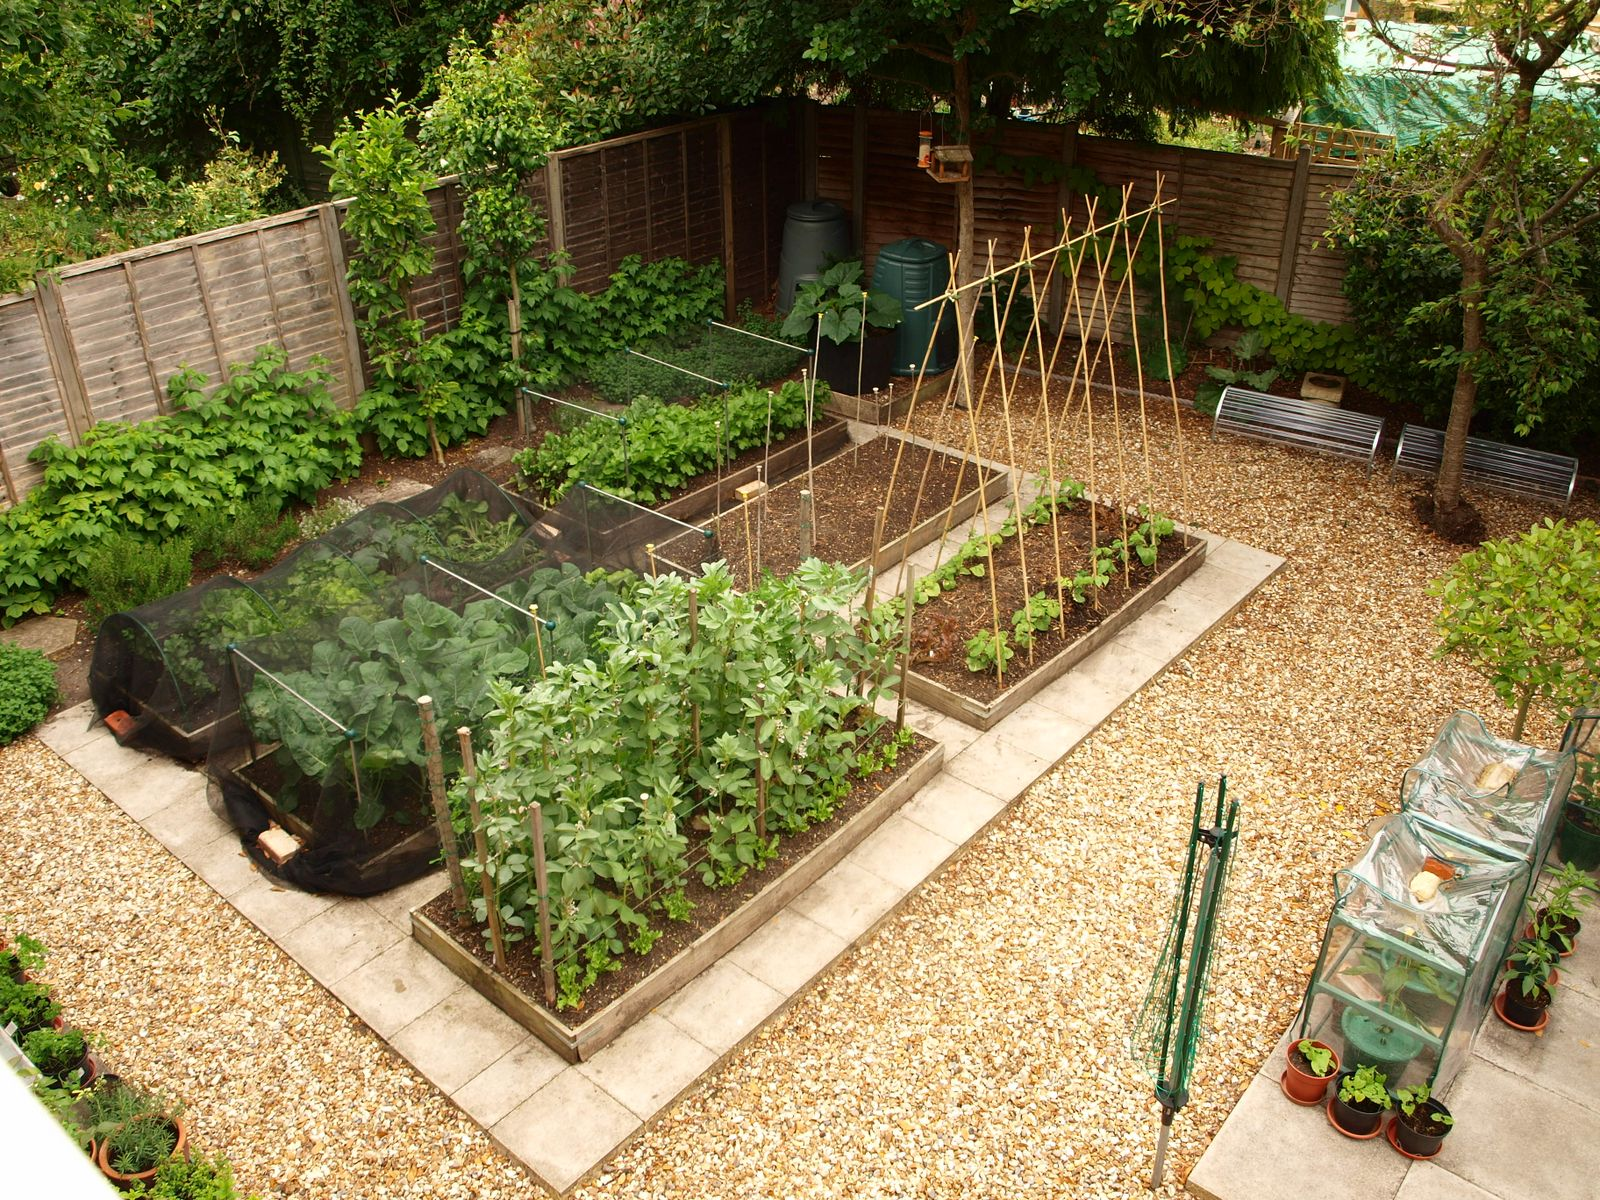 Charming Vegetable Garden Tips And Ideas Part - 3: Gardening Advice For Beginners - Part 1